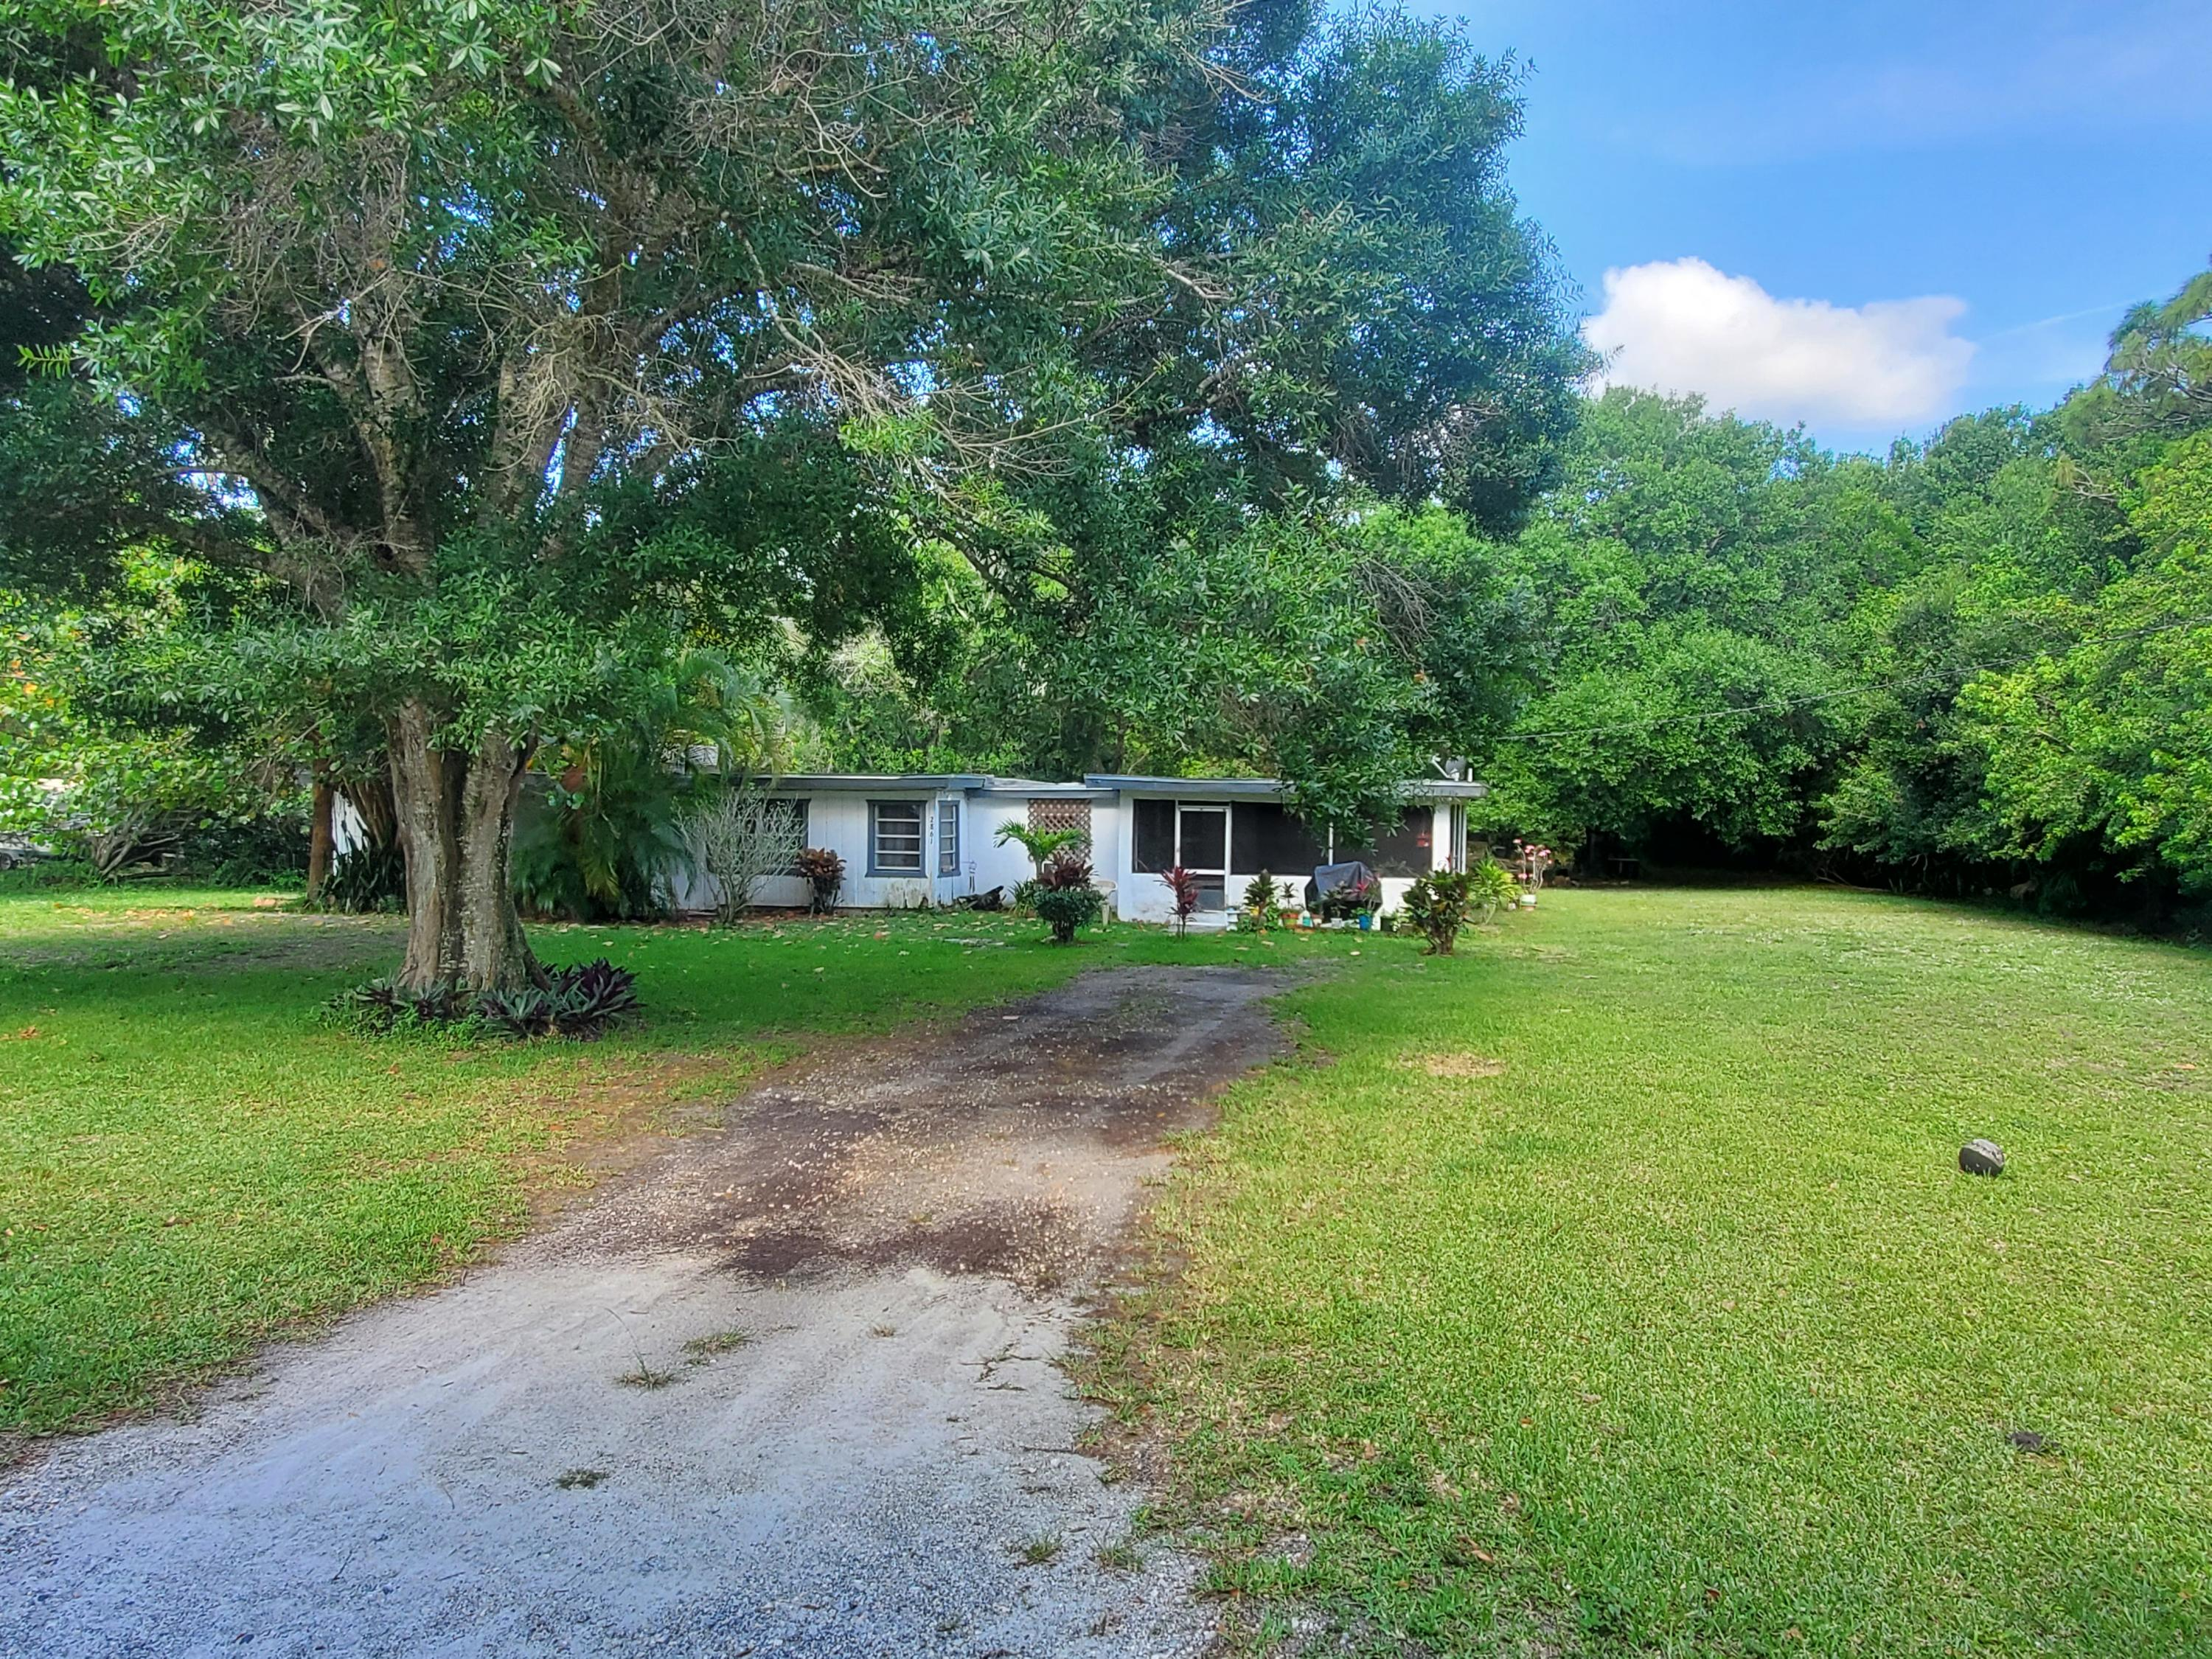 2861 Dame Road, Fort Pierce, Florida 34981, 3 Bedrooms Bedrooms, ,1 BathroomBathrooms,Single Family,For Sale,2861 Dame Road,1,RX-10713334